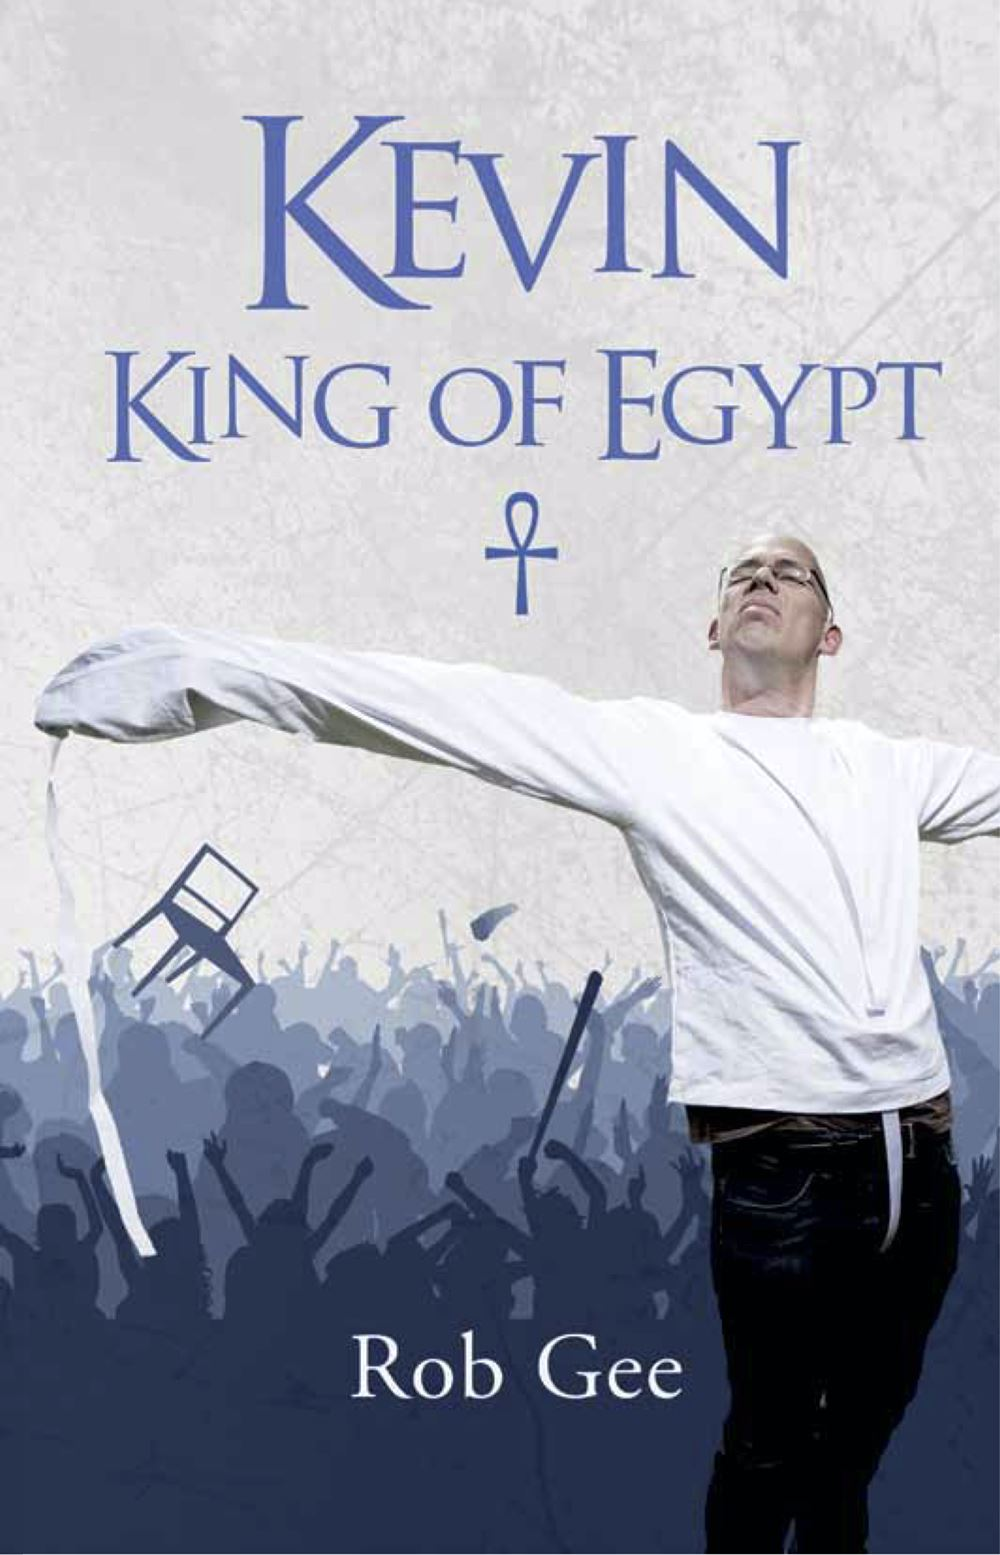 Kevin, King of Egypt - Click to enlarge the image set